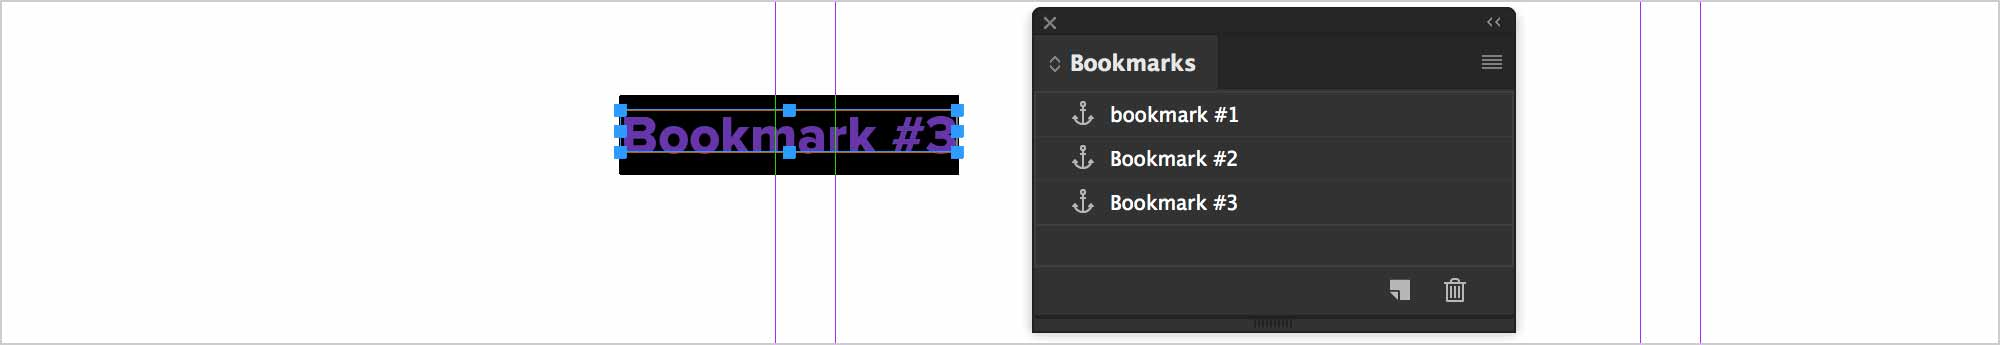 indesign-bookmarks-exercise